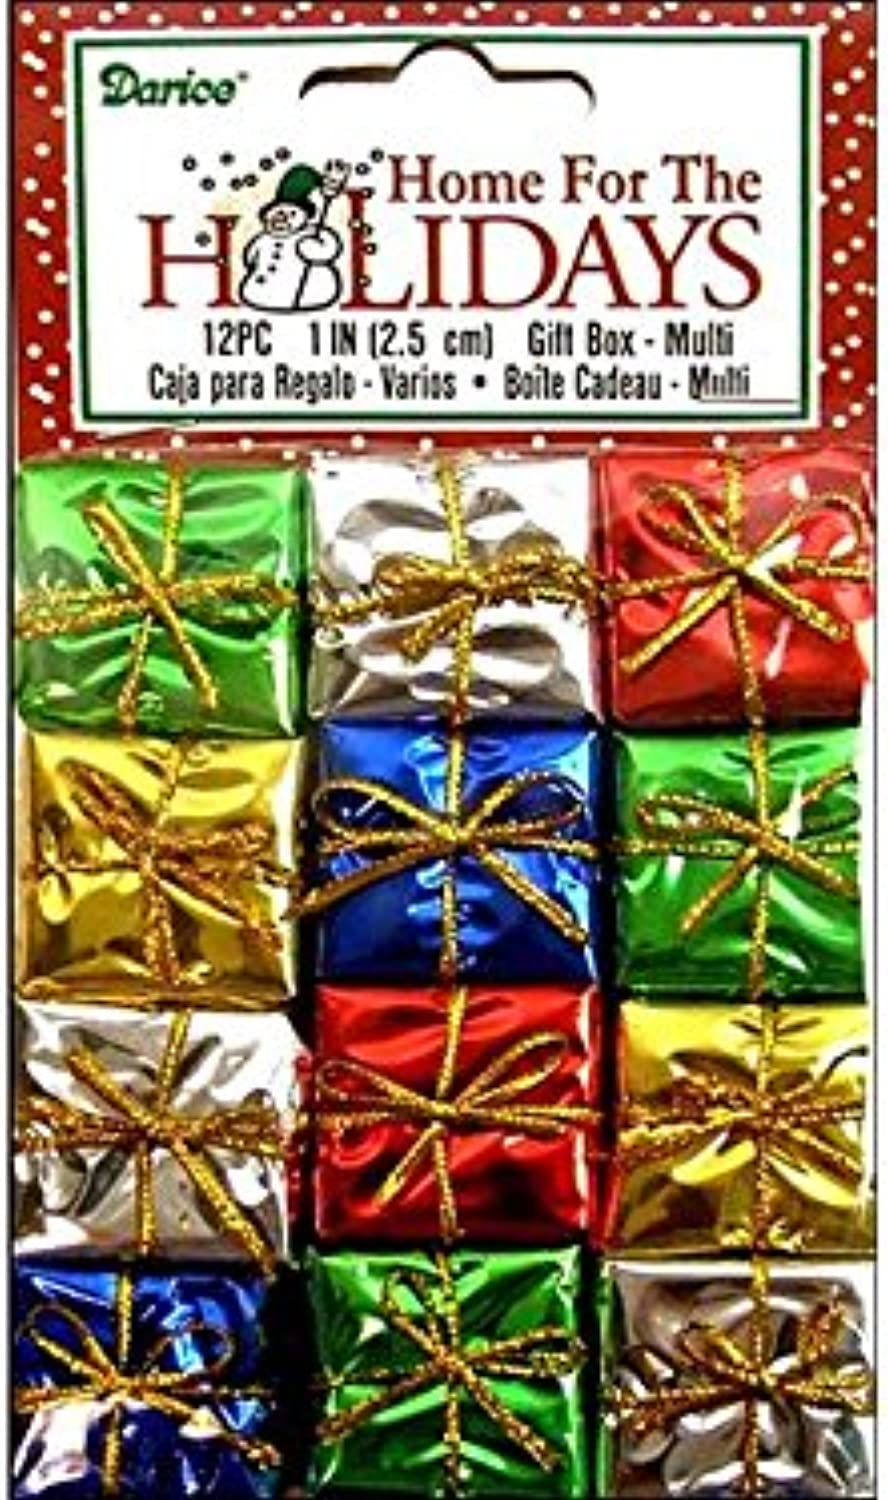 Unknown Package of 48 Decorative Miniature Foil Paper Wrapped Holiday Packages